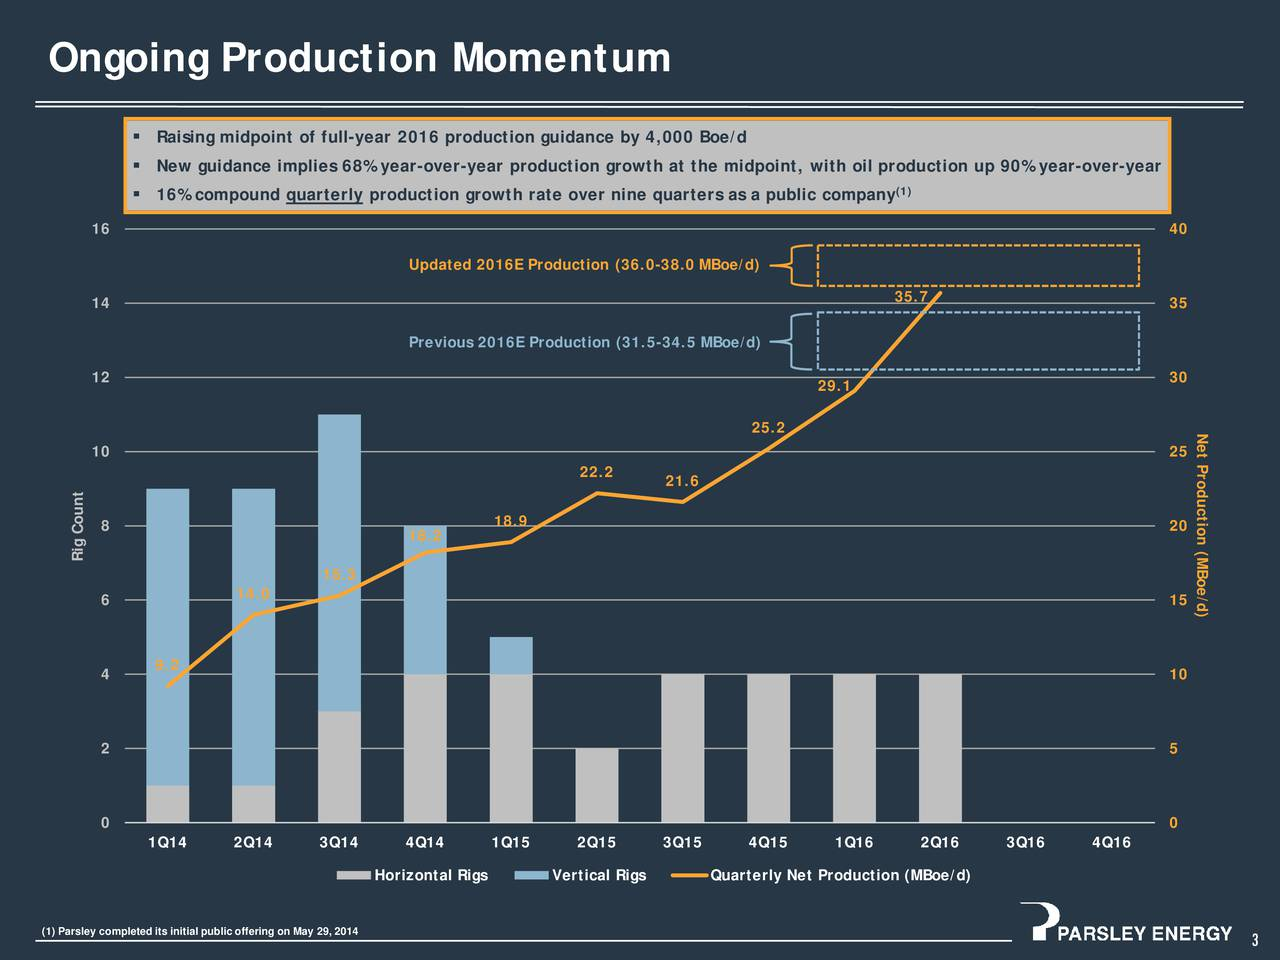 Raising midpoint of full-year 2016 production guidance by 4,000 Boe/d New guidance implies 68% year-over-year production growth at the midpoint, with oil production up 90% year-over-year 16% compound quarterly production growth rate over nine quarters as a public company (1) 16 40 Updated 2016E Production (36.0-38.0 MBoe/d) 35.7 14 35 Previous 2016E Production (31.5-34.5 MBoe/d) 12 30 29.1 25.2 Net Production (MBoe/d) 10 25 22.2 21.6 8 18.9 20 18.2 Rig Count 15.3 14.0 6 15 9.2 4 10 2 5 0 0 1Q14 2Q14 3Q14 4Q14 1Q15 2Q15 3Q15 4Q15 1Q16 2Q16 3Q16 4Q16 Horizontal Rigs Vertical Rigs Quarterly Net Production (MBoe/d) (1) Parsley completed its initial public offering on May 29, 2014 3